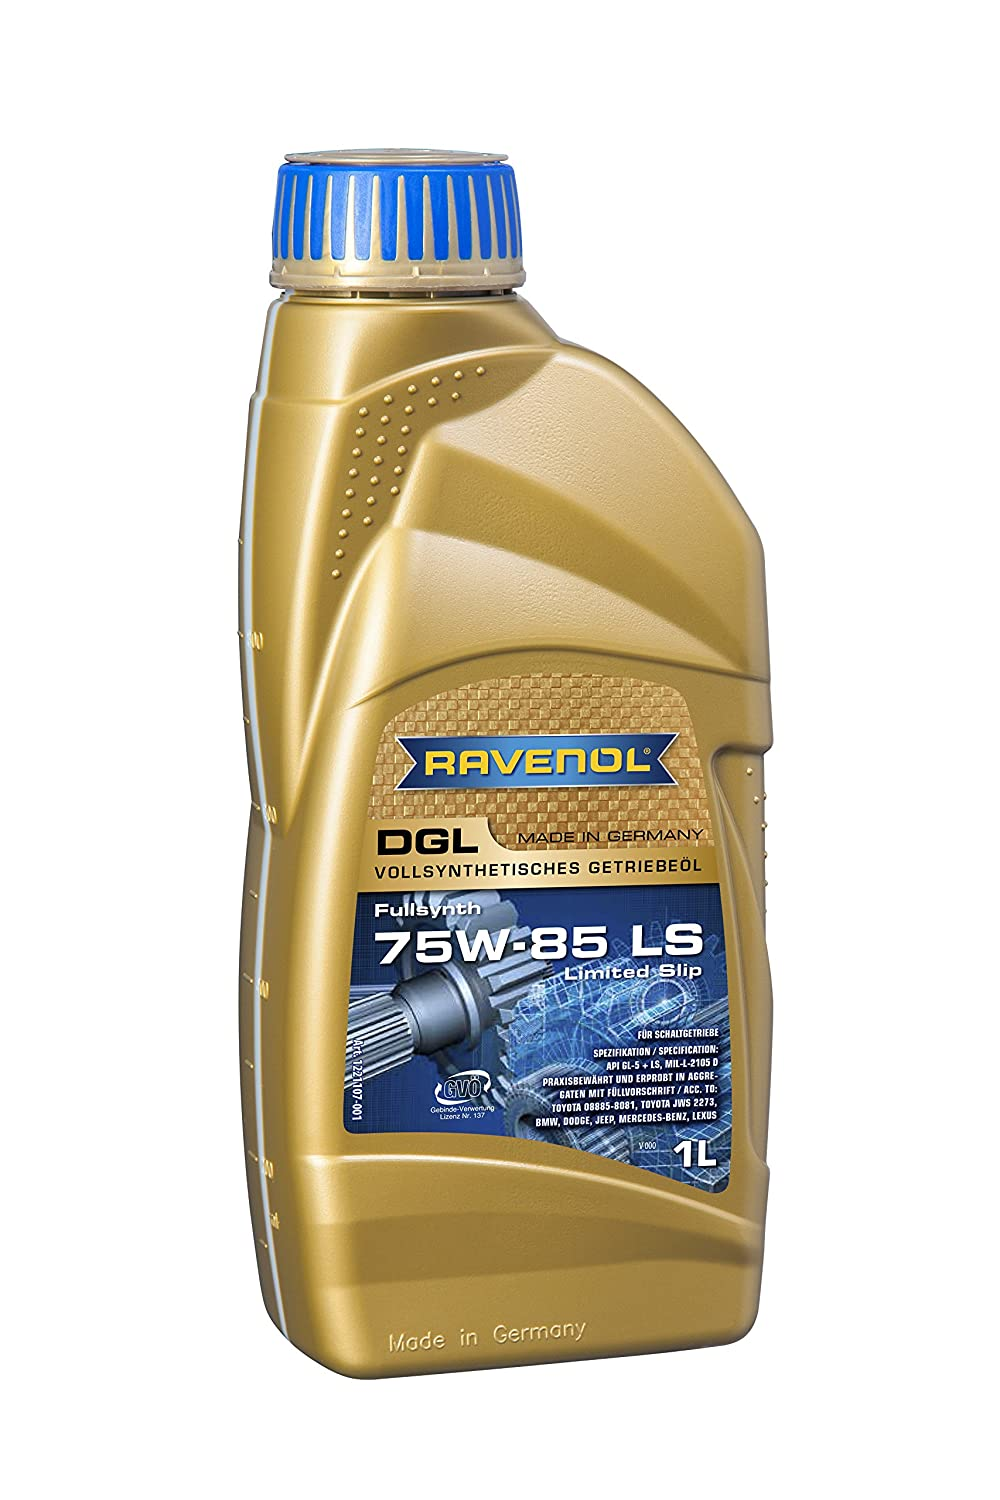 Ravenol j1 C1144 – 001 SAE 75 W-85 Gear Oil – DGL Full Synthetic API gl-5 LS (1リットル) B071JVBHLM